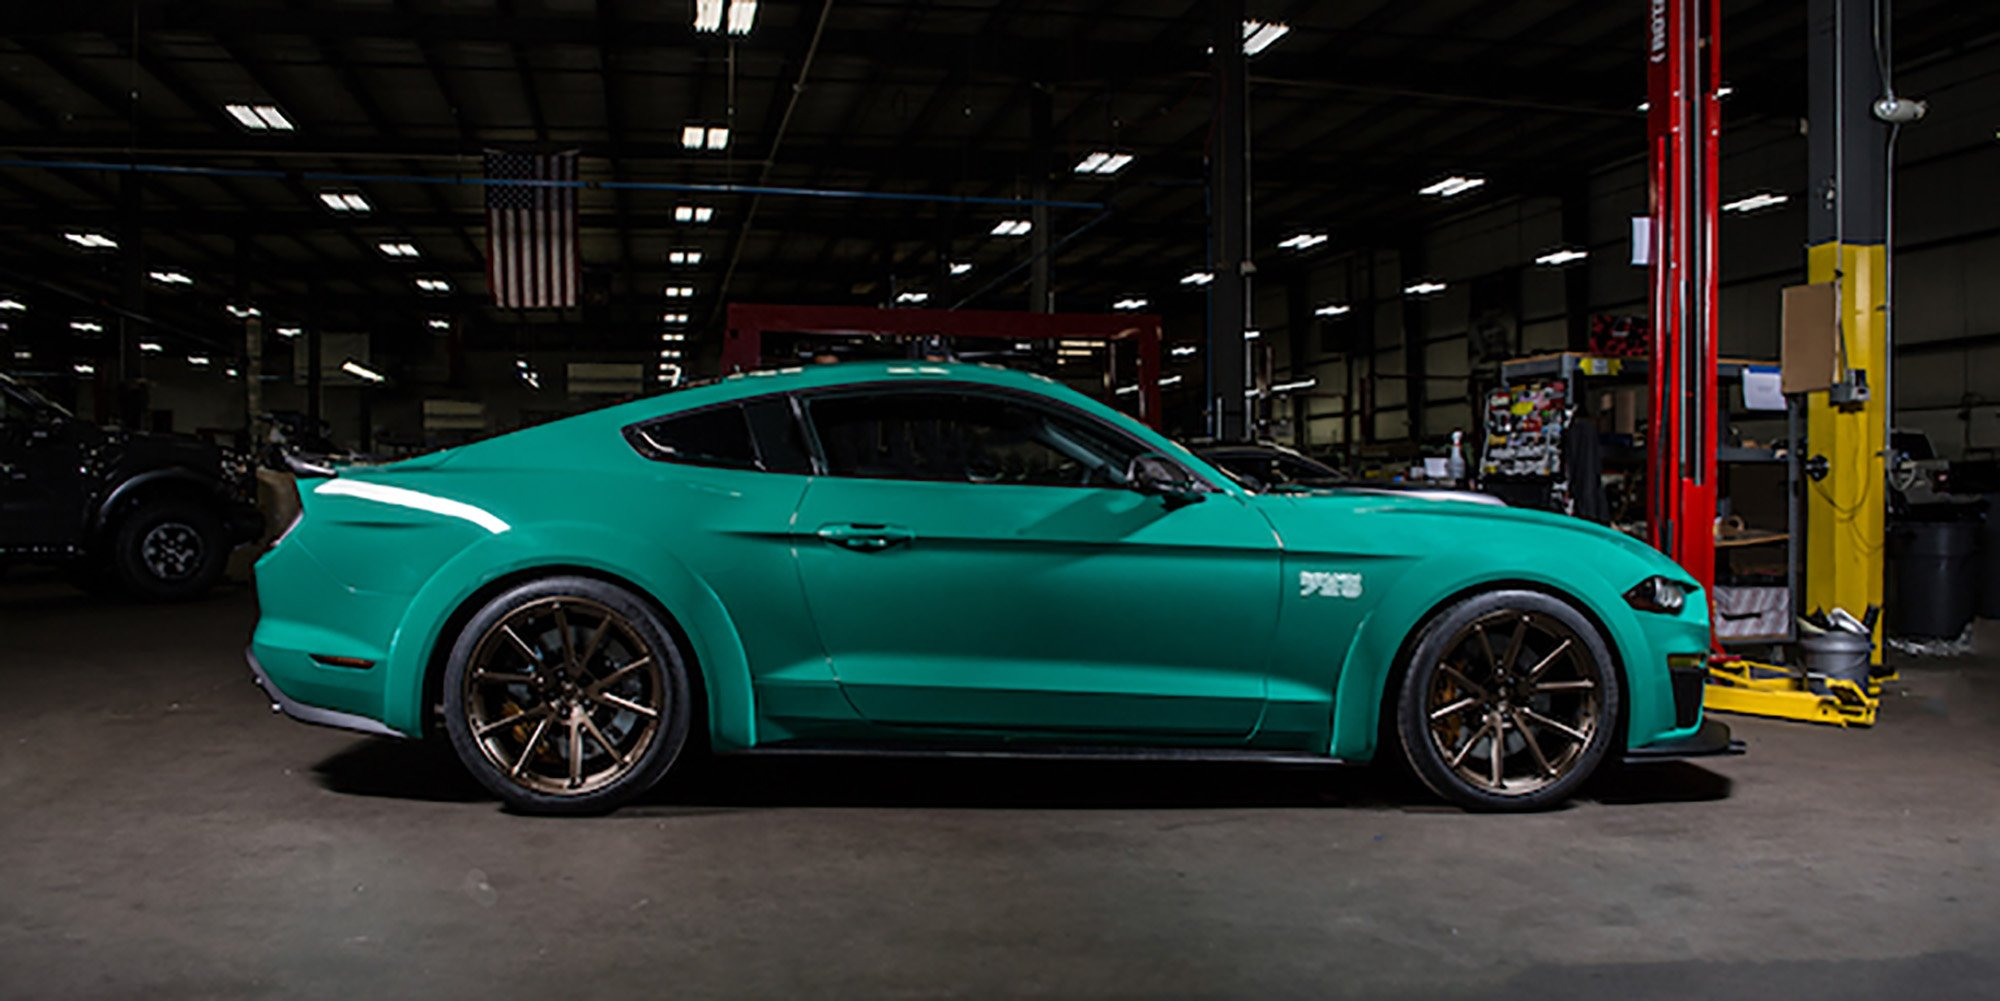 2018 Ford Mustang Roush 729 Makes La Debut Photos 1 Of 4